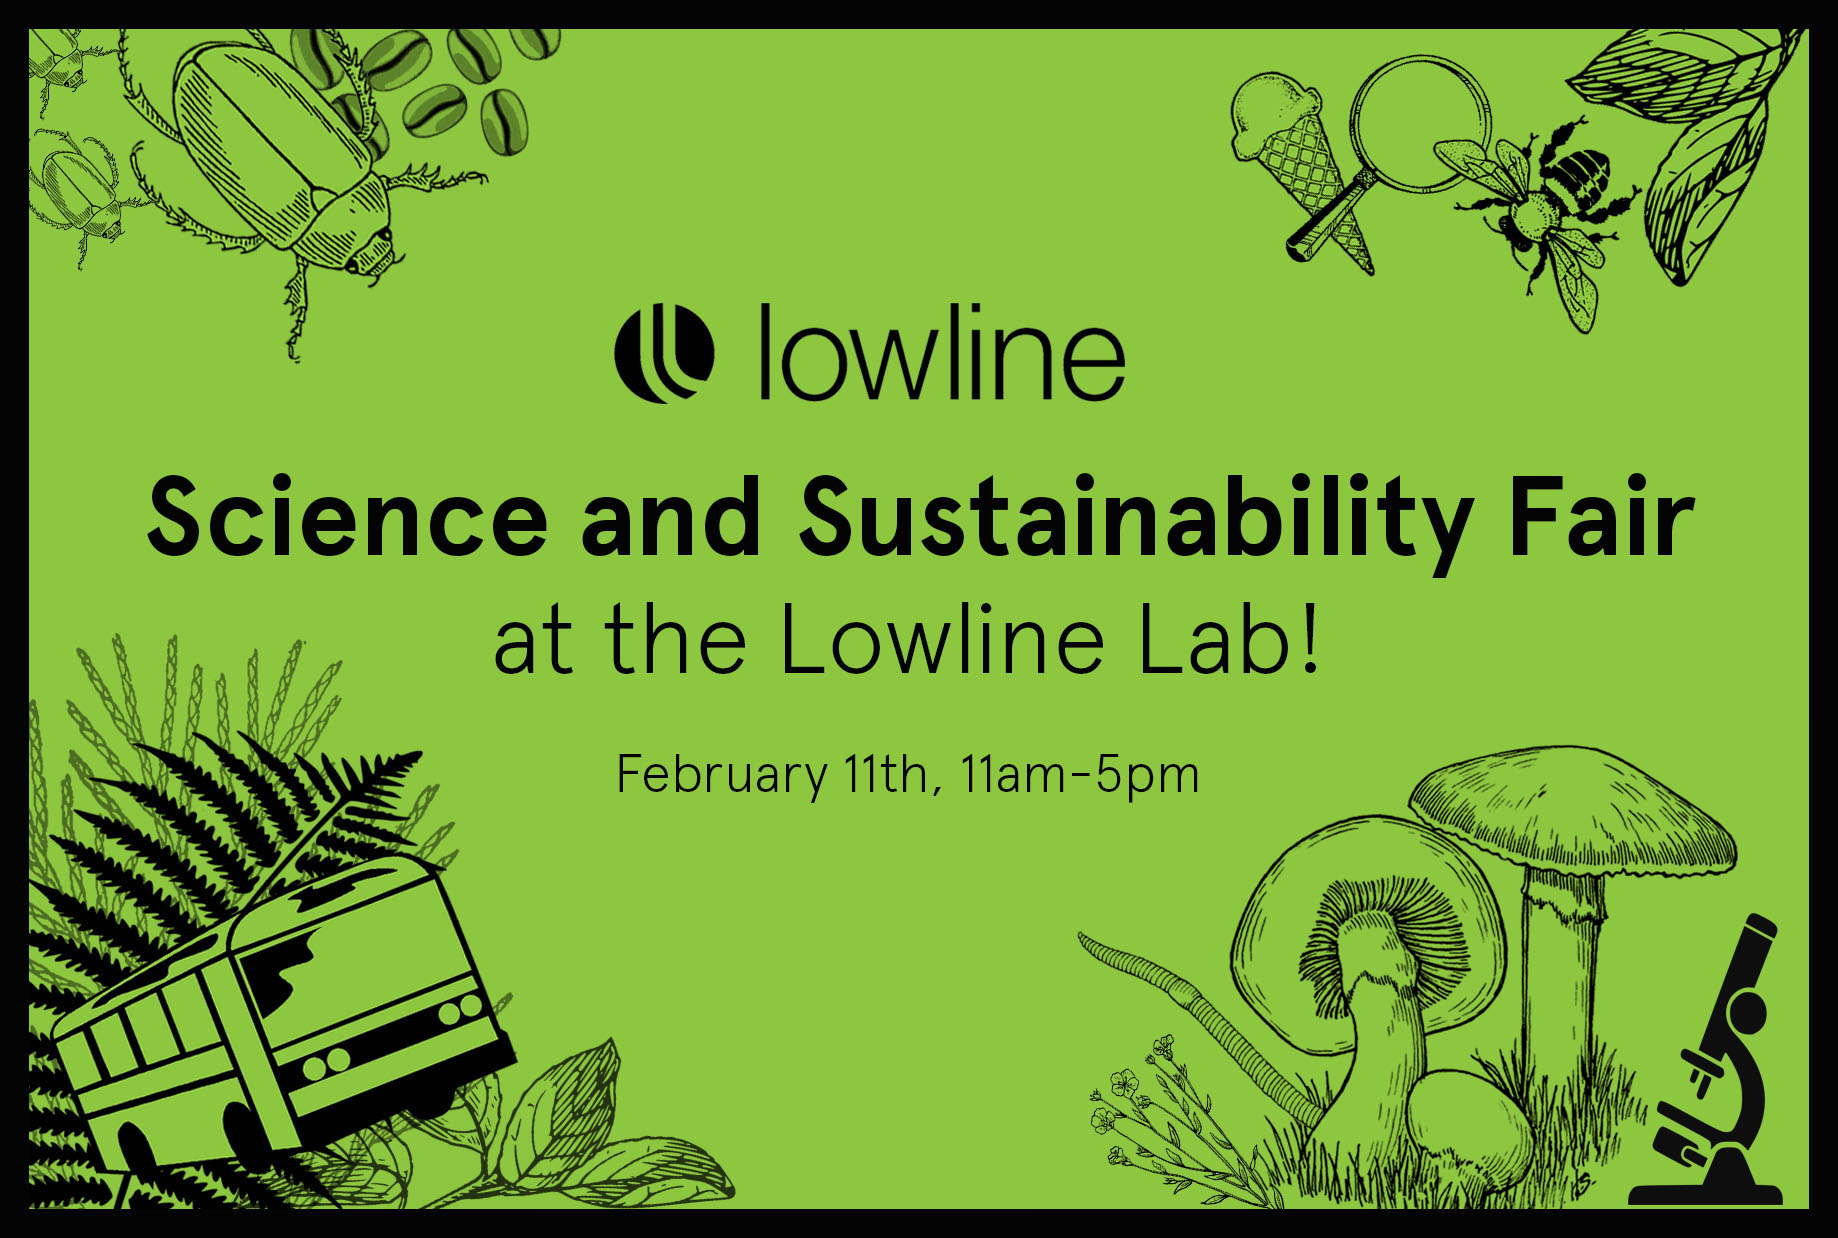 Science & Sustainability Fair at the Lowline